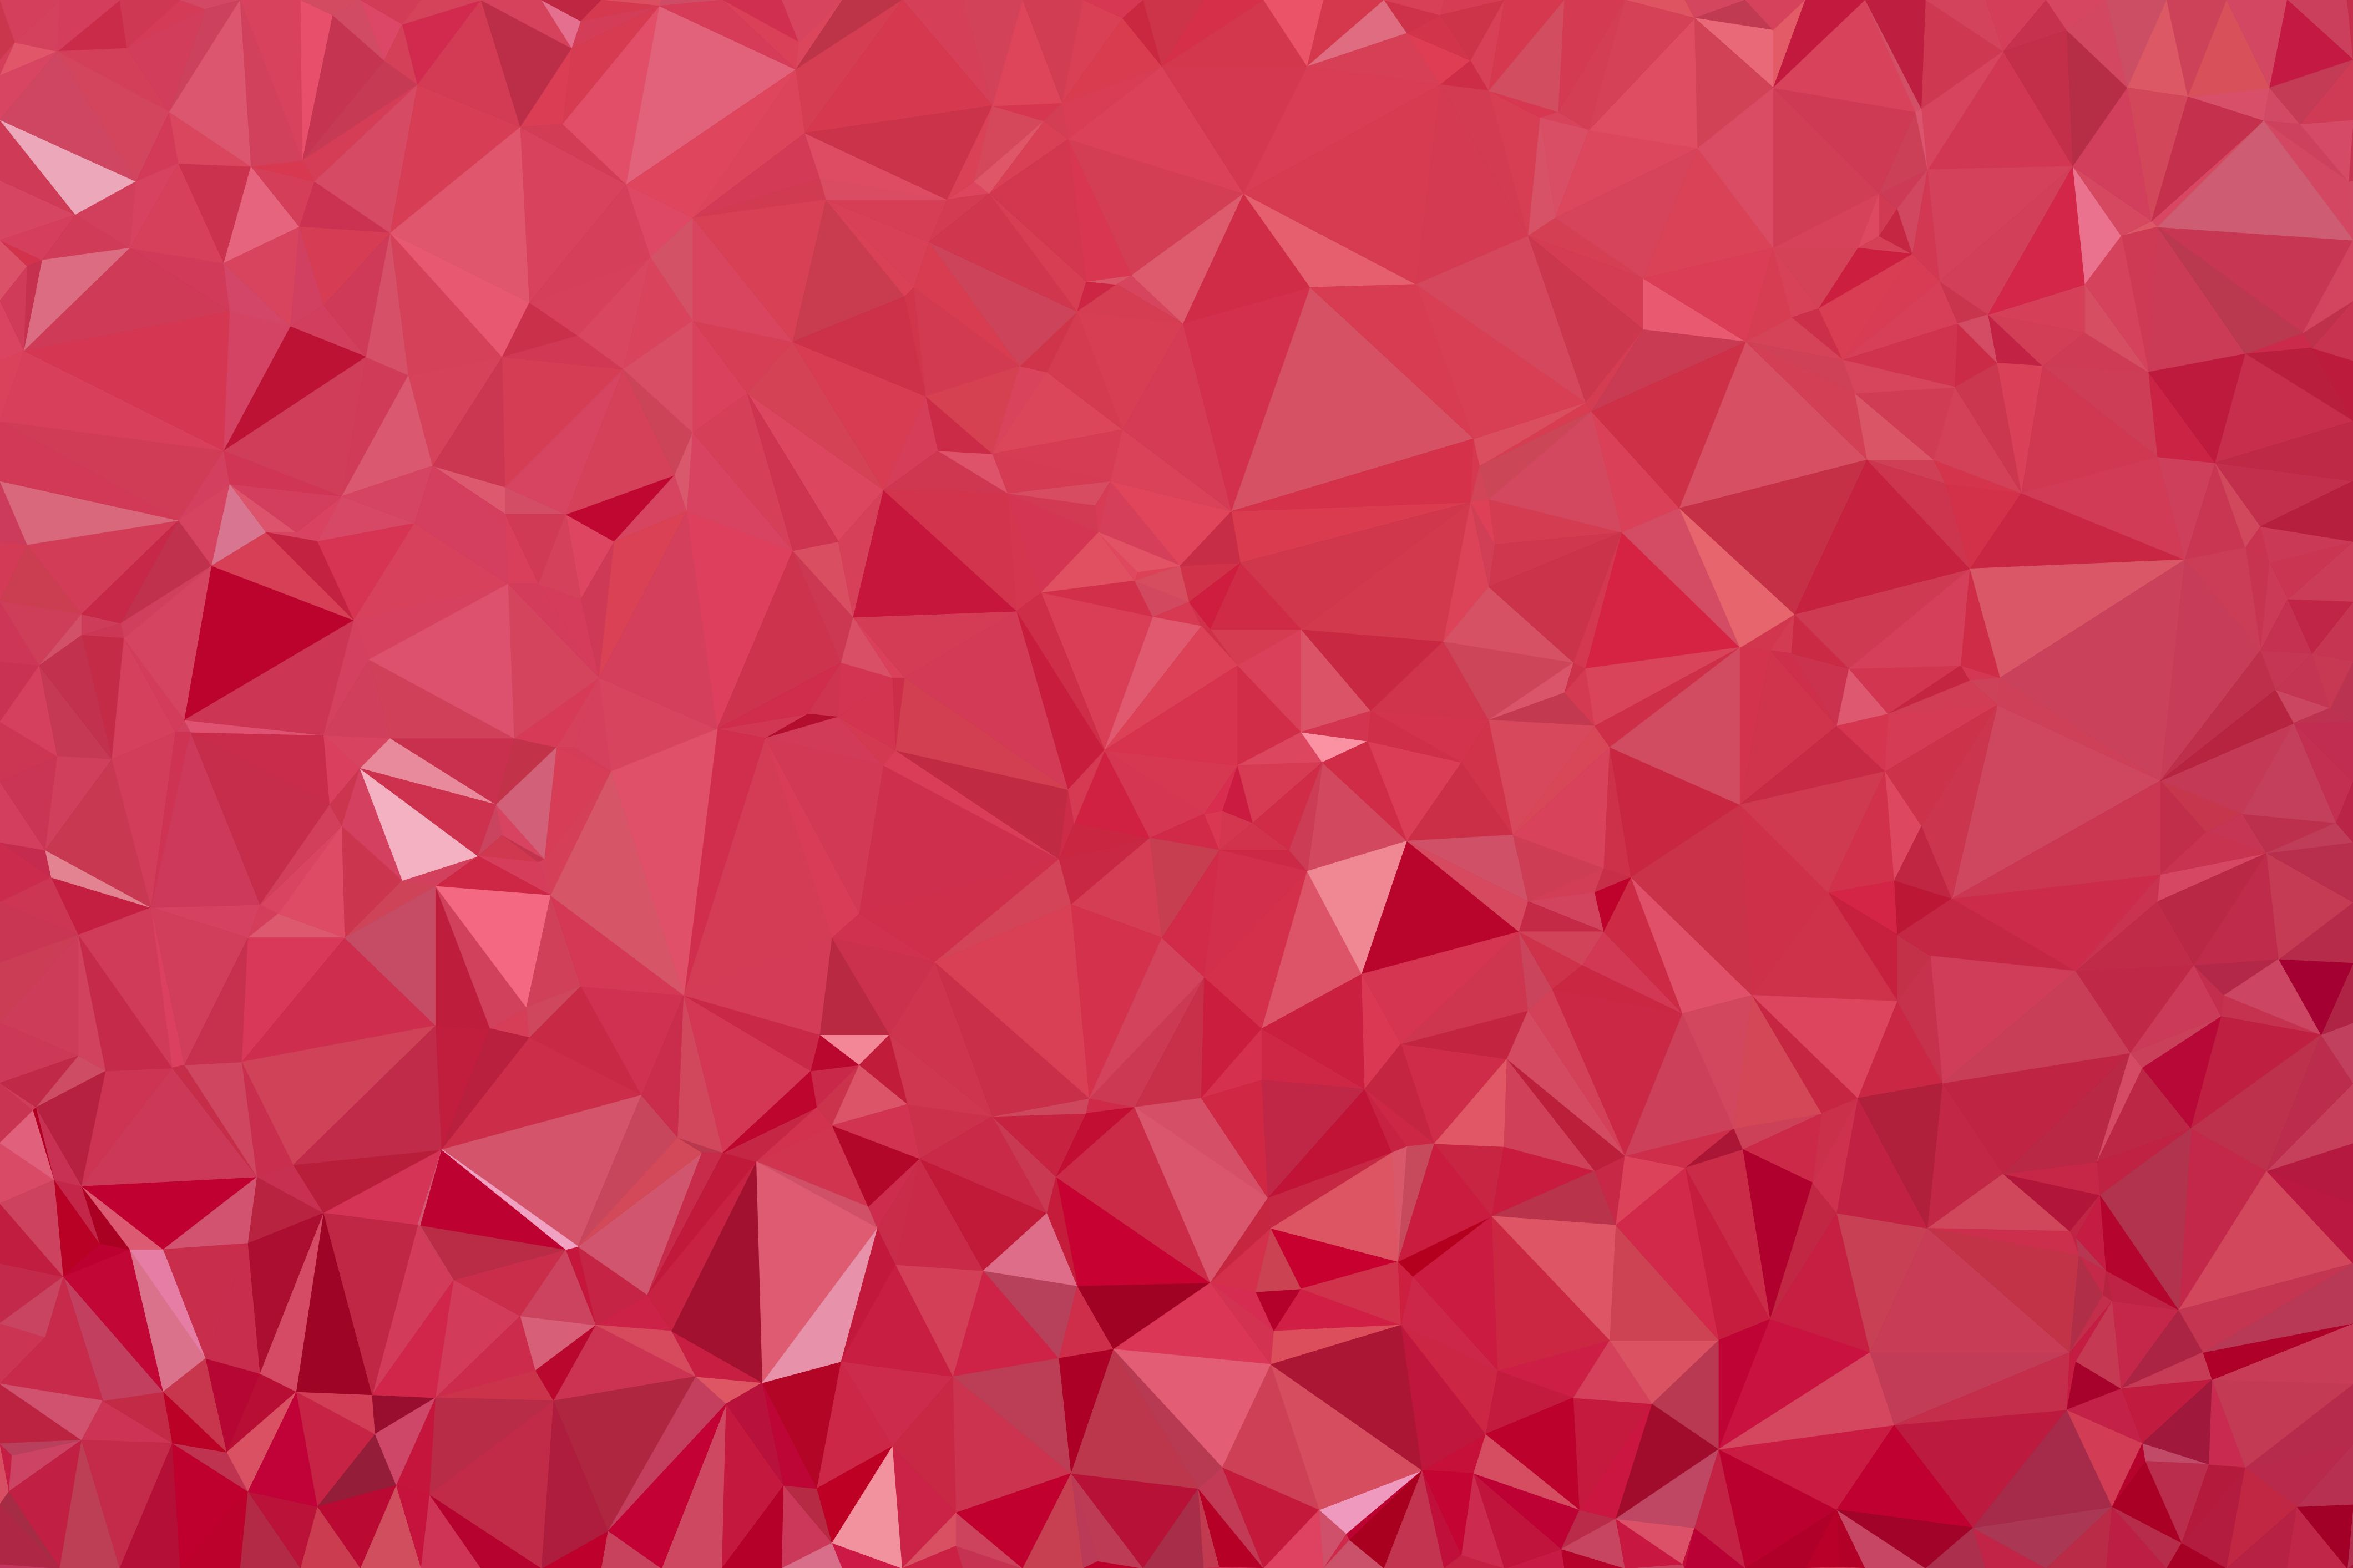 74167 download wallpaper Texture, Textures, Geometric, Triangles, Polygon screensavers and pictures for free